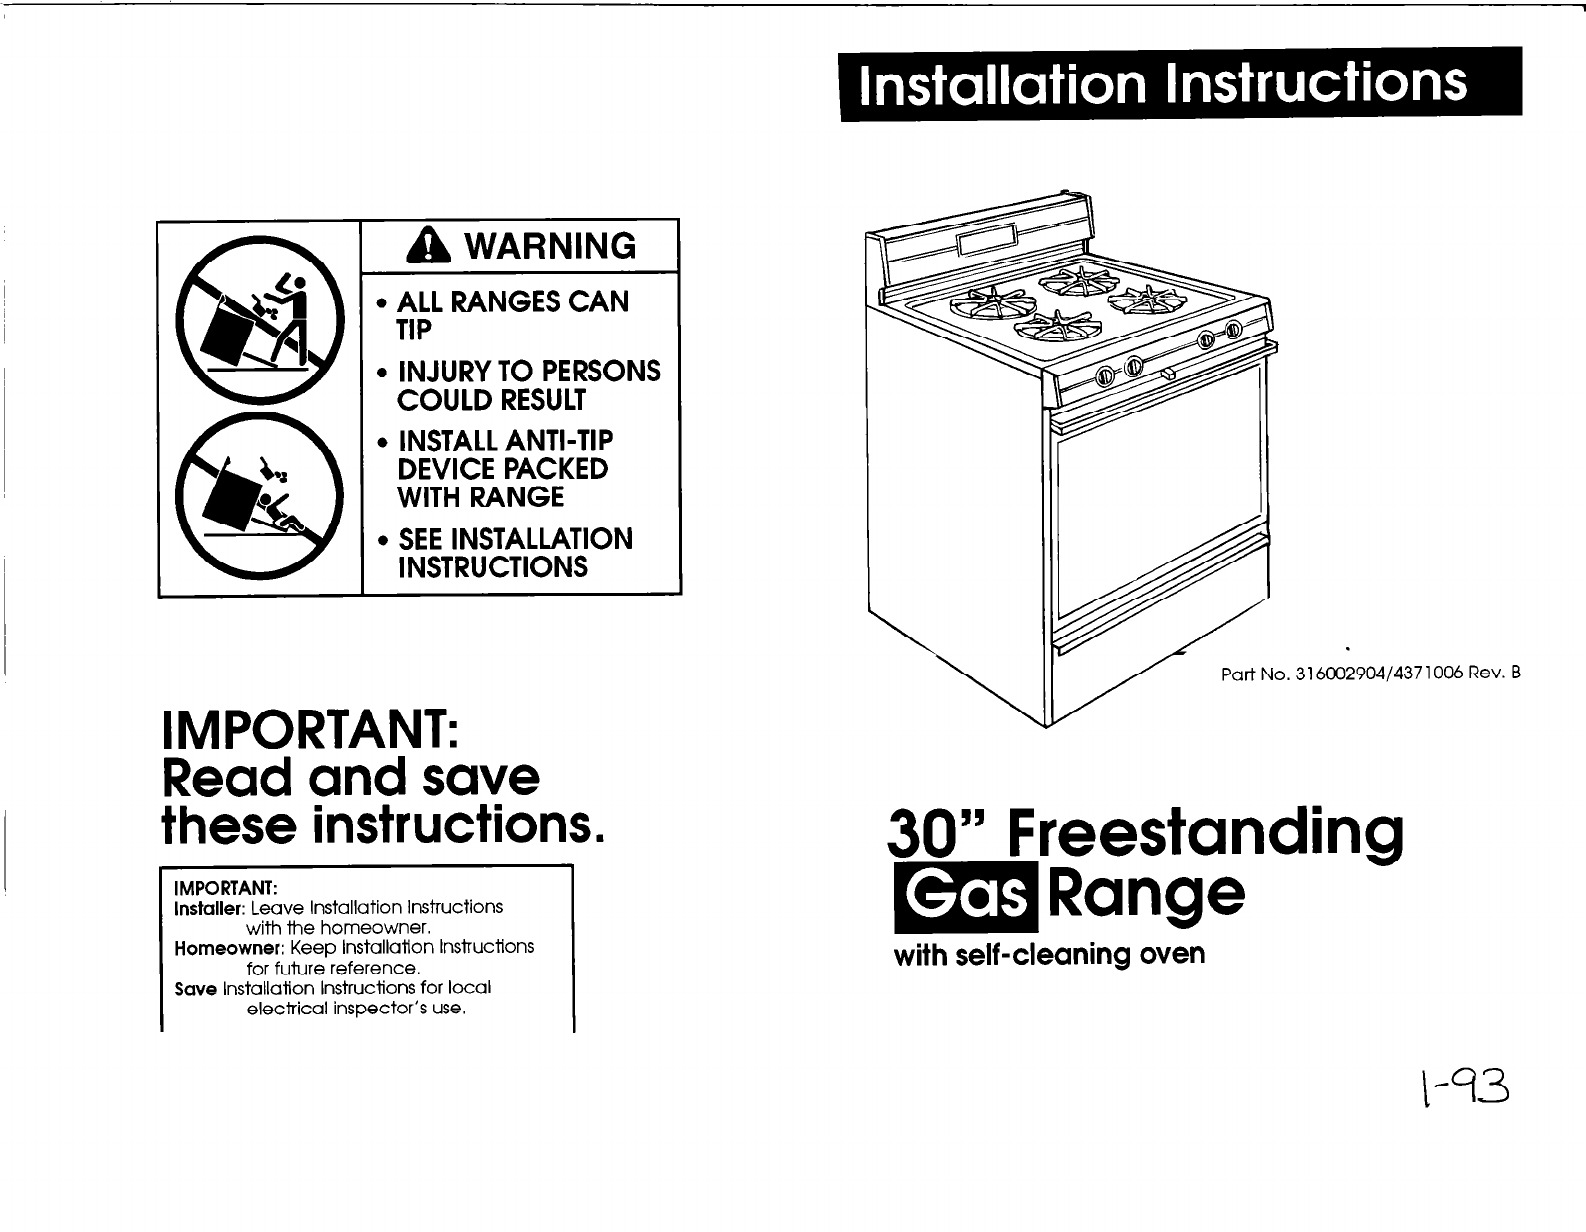 Refrigerator Cabi  Height in addition New Page furthermore Plumber Cartoon Pics together with Collectionbdwn Ball Valve Diagram furthermore Samsung Heater Radiant Fcq3 Dg47 00039a Ap4342634. on future oven